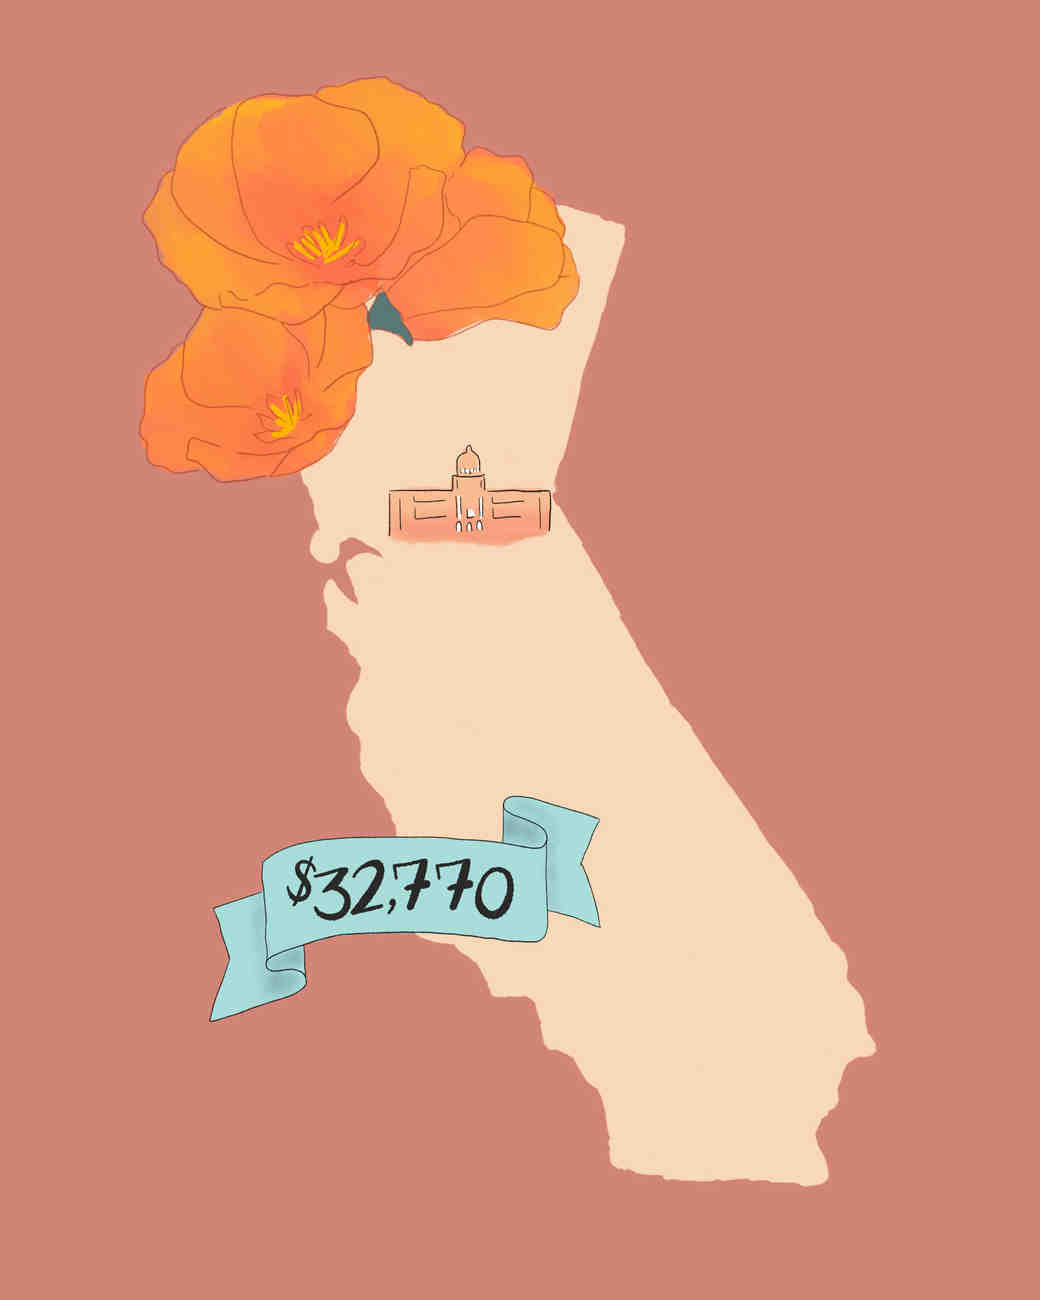 state wedding costs illustration california